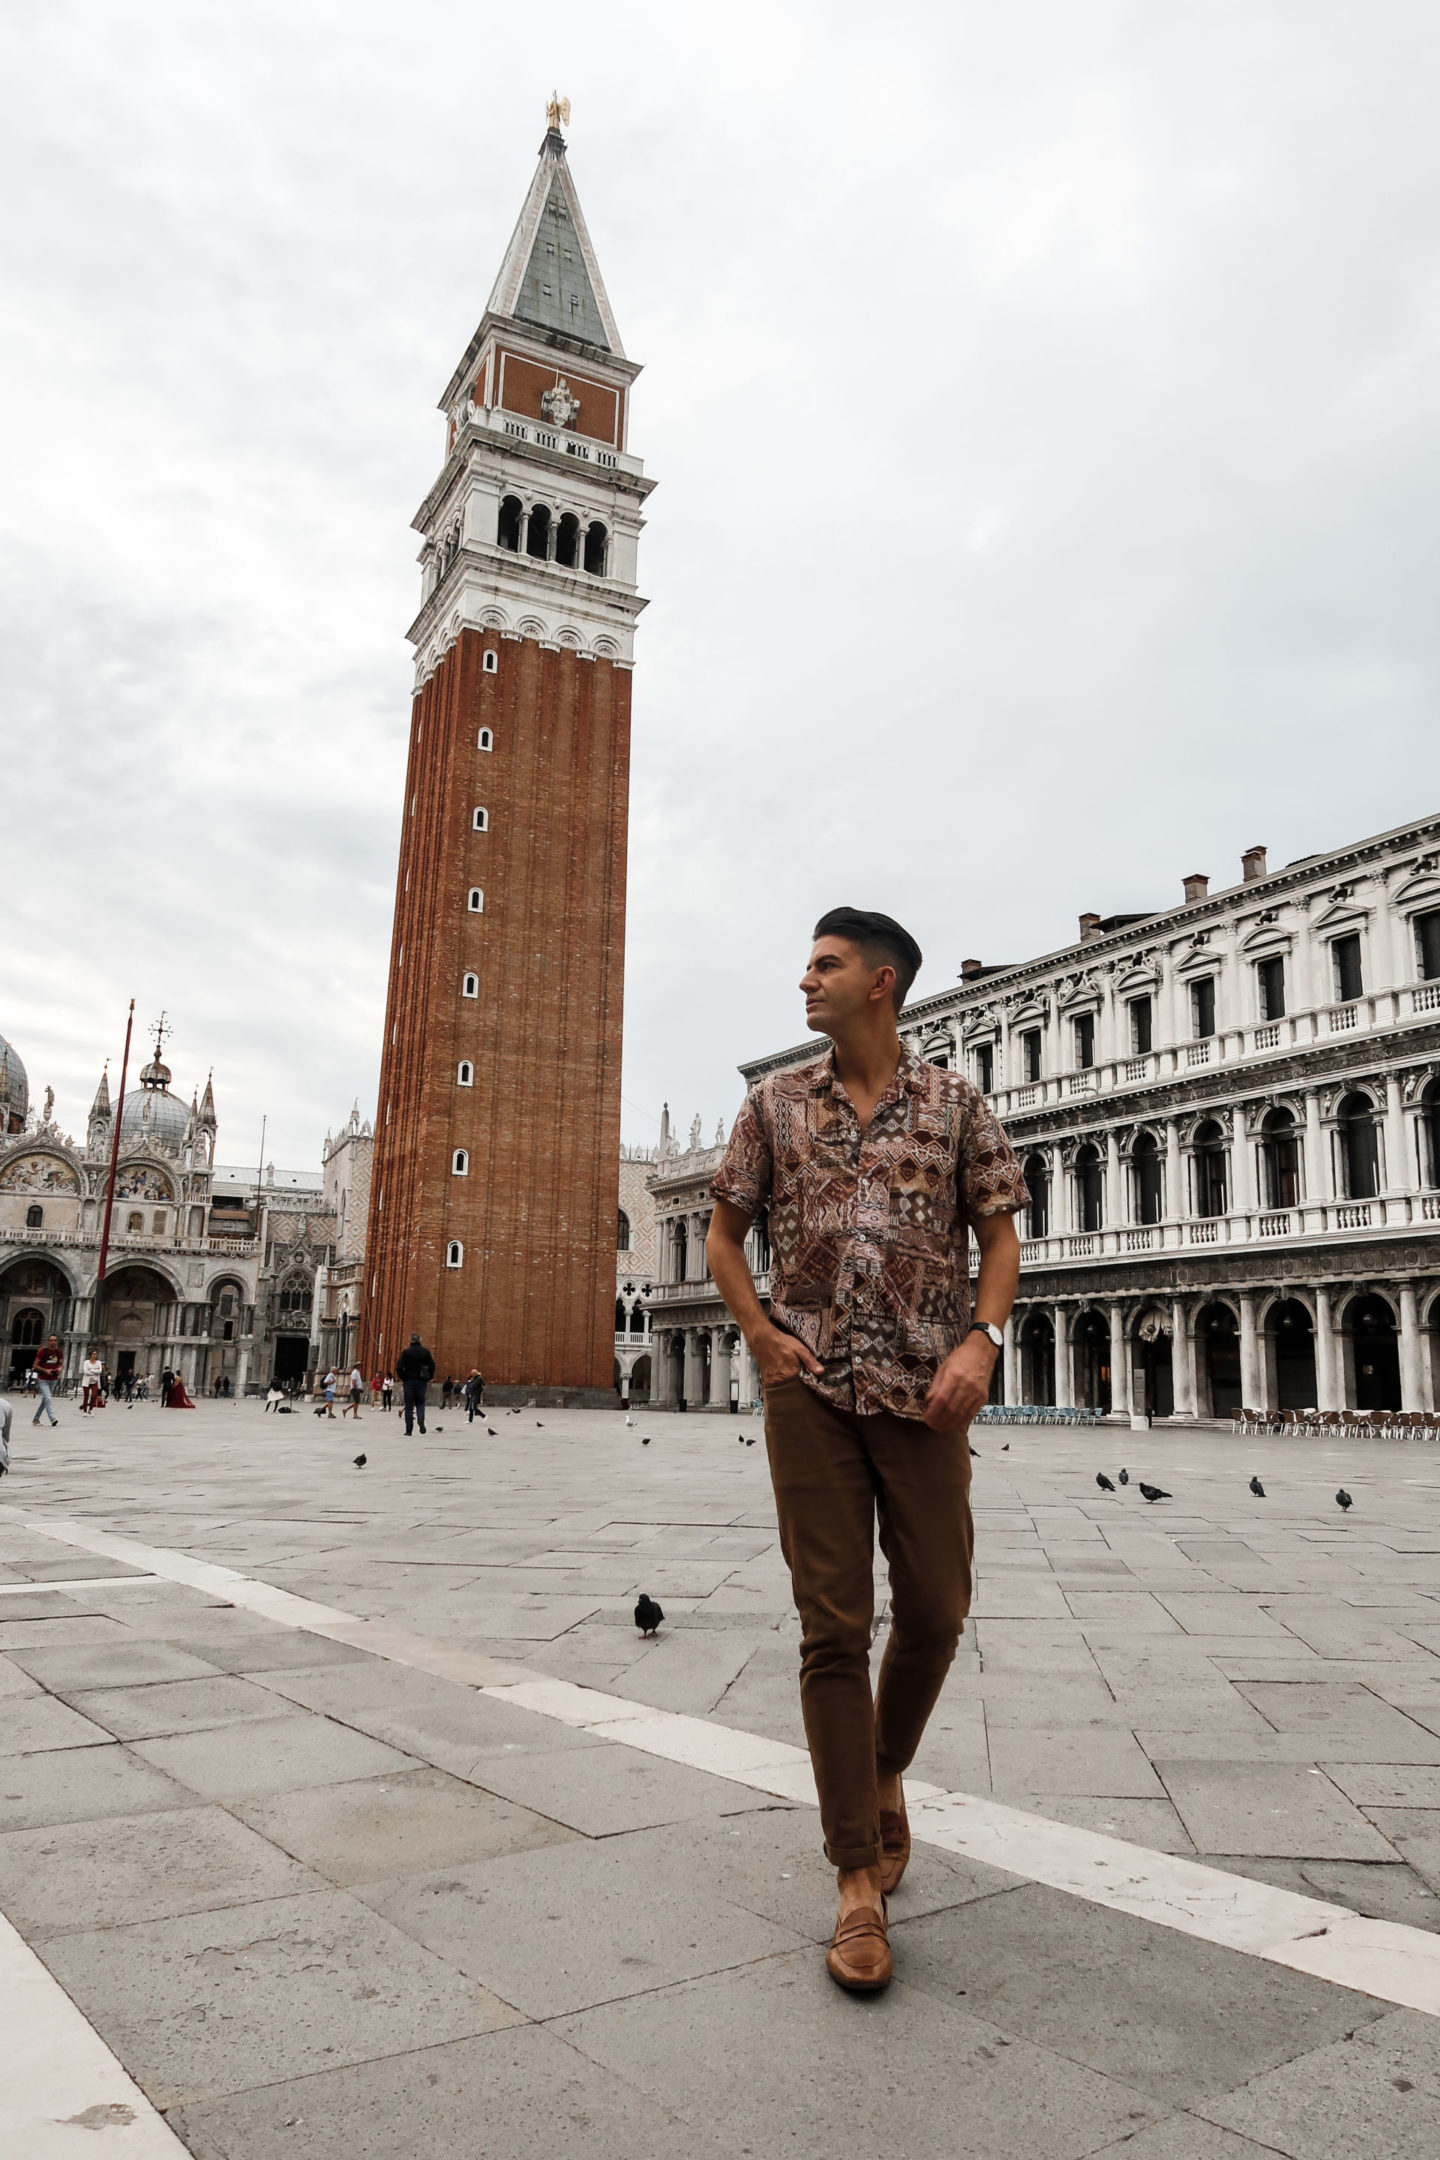 St Mark's Square Venice, St Mark's Basilica & Doge's Palace